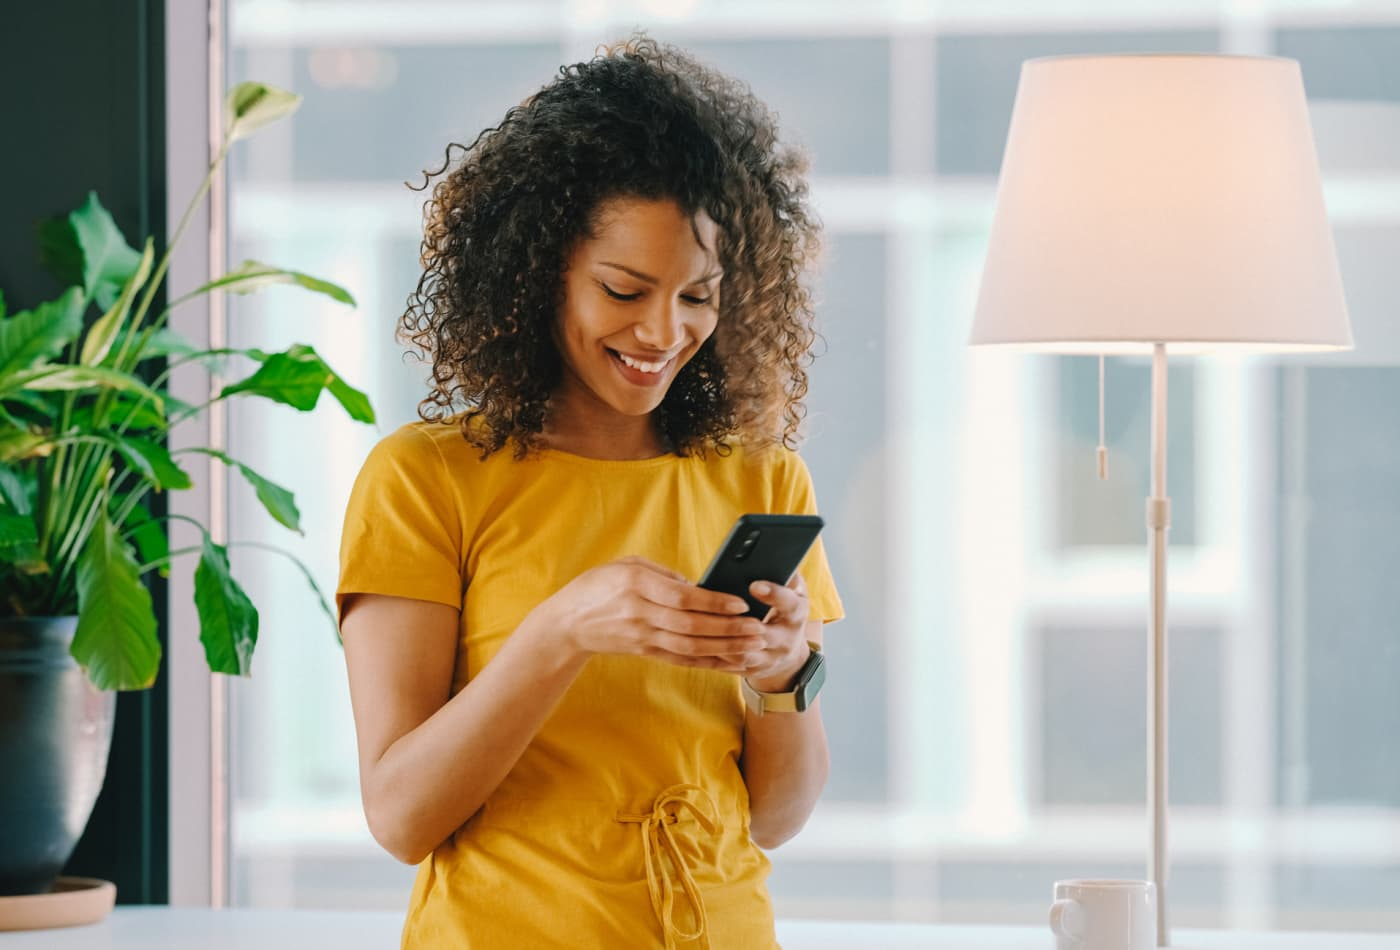 Are you paying too much for your phone? Here's how to potentially save hundreds per year on your bill